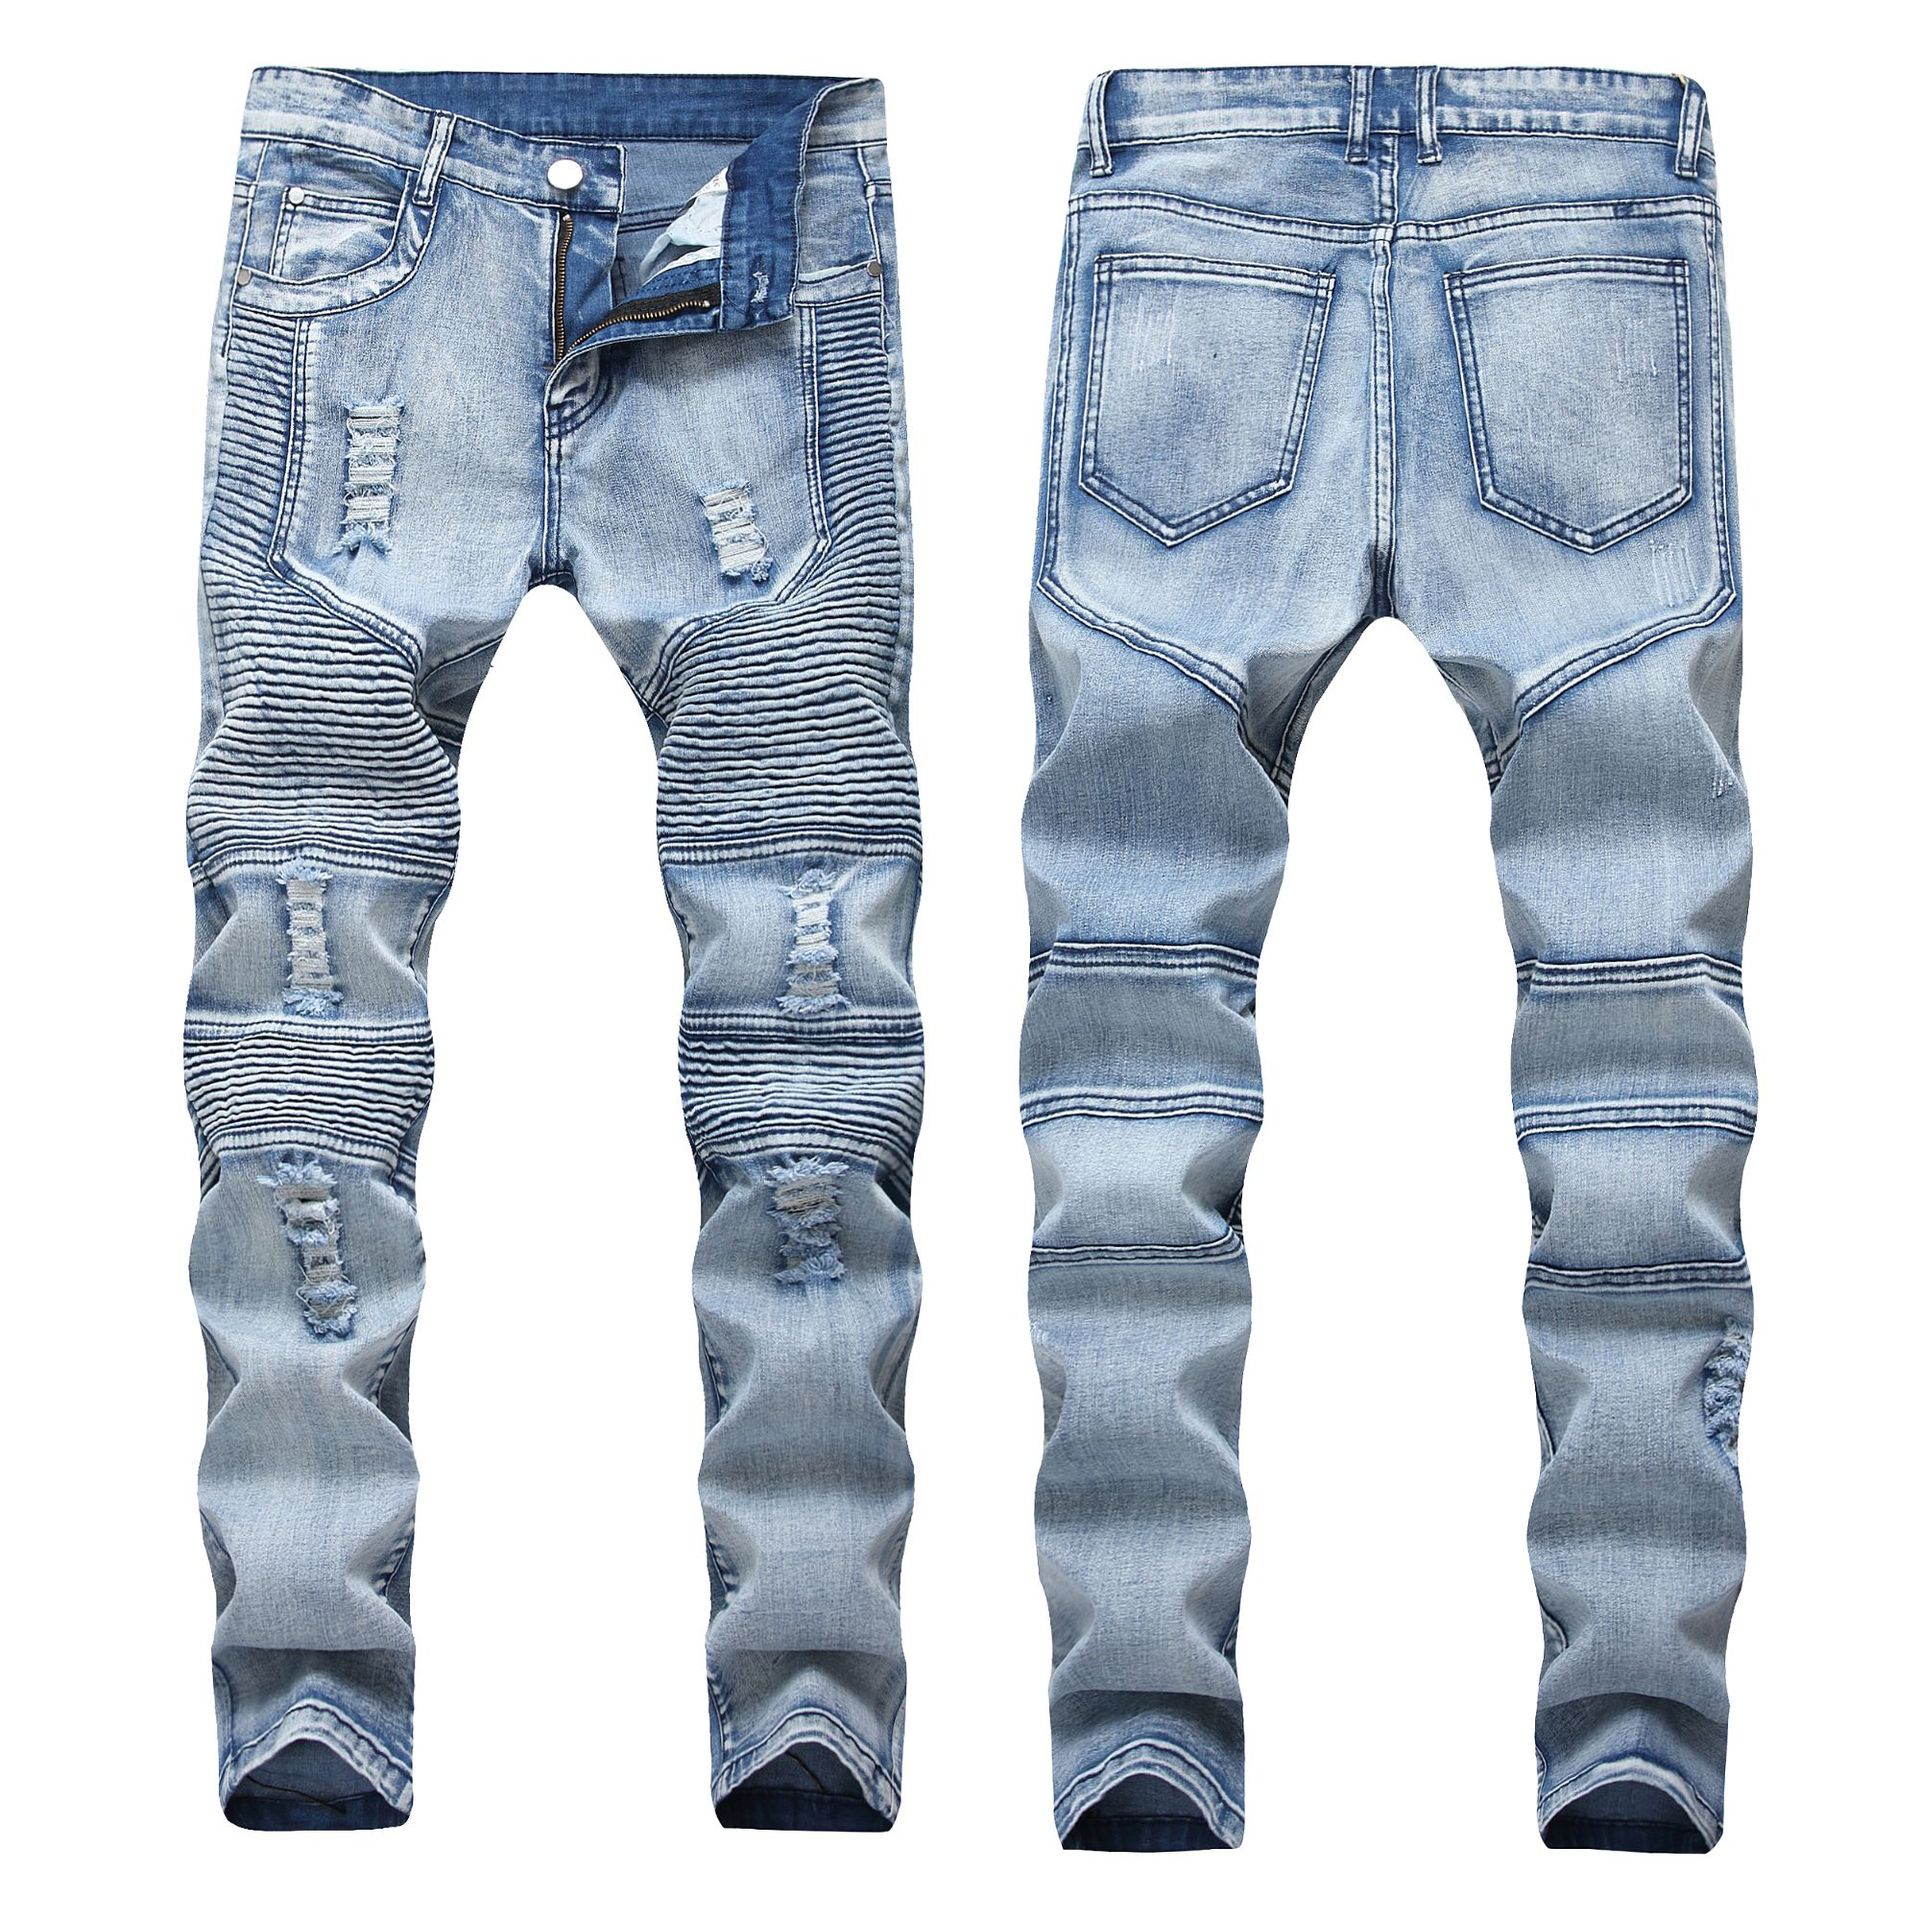 Europe And America Pleated With Holes Jeans Men's Elasticity Slim Fit Pants MEN'S Jeans Fashion Man